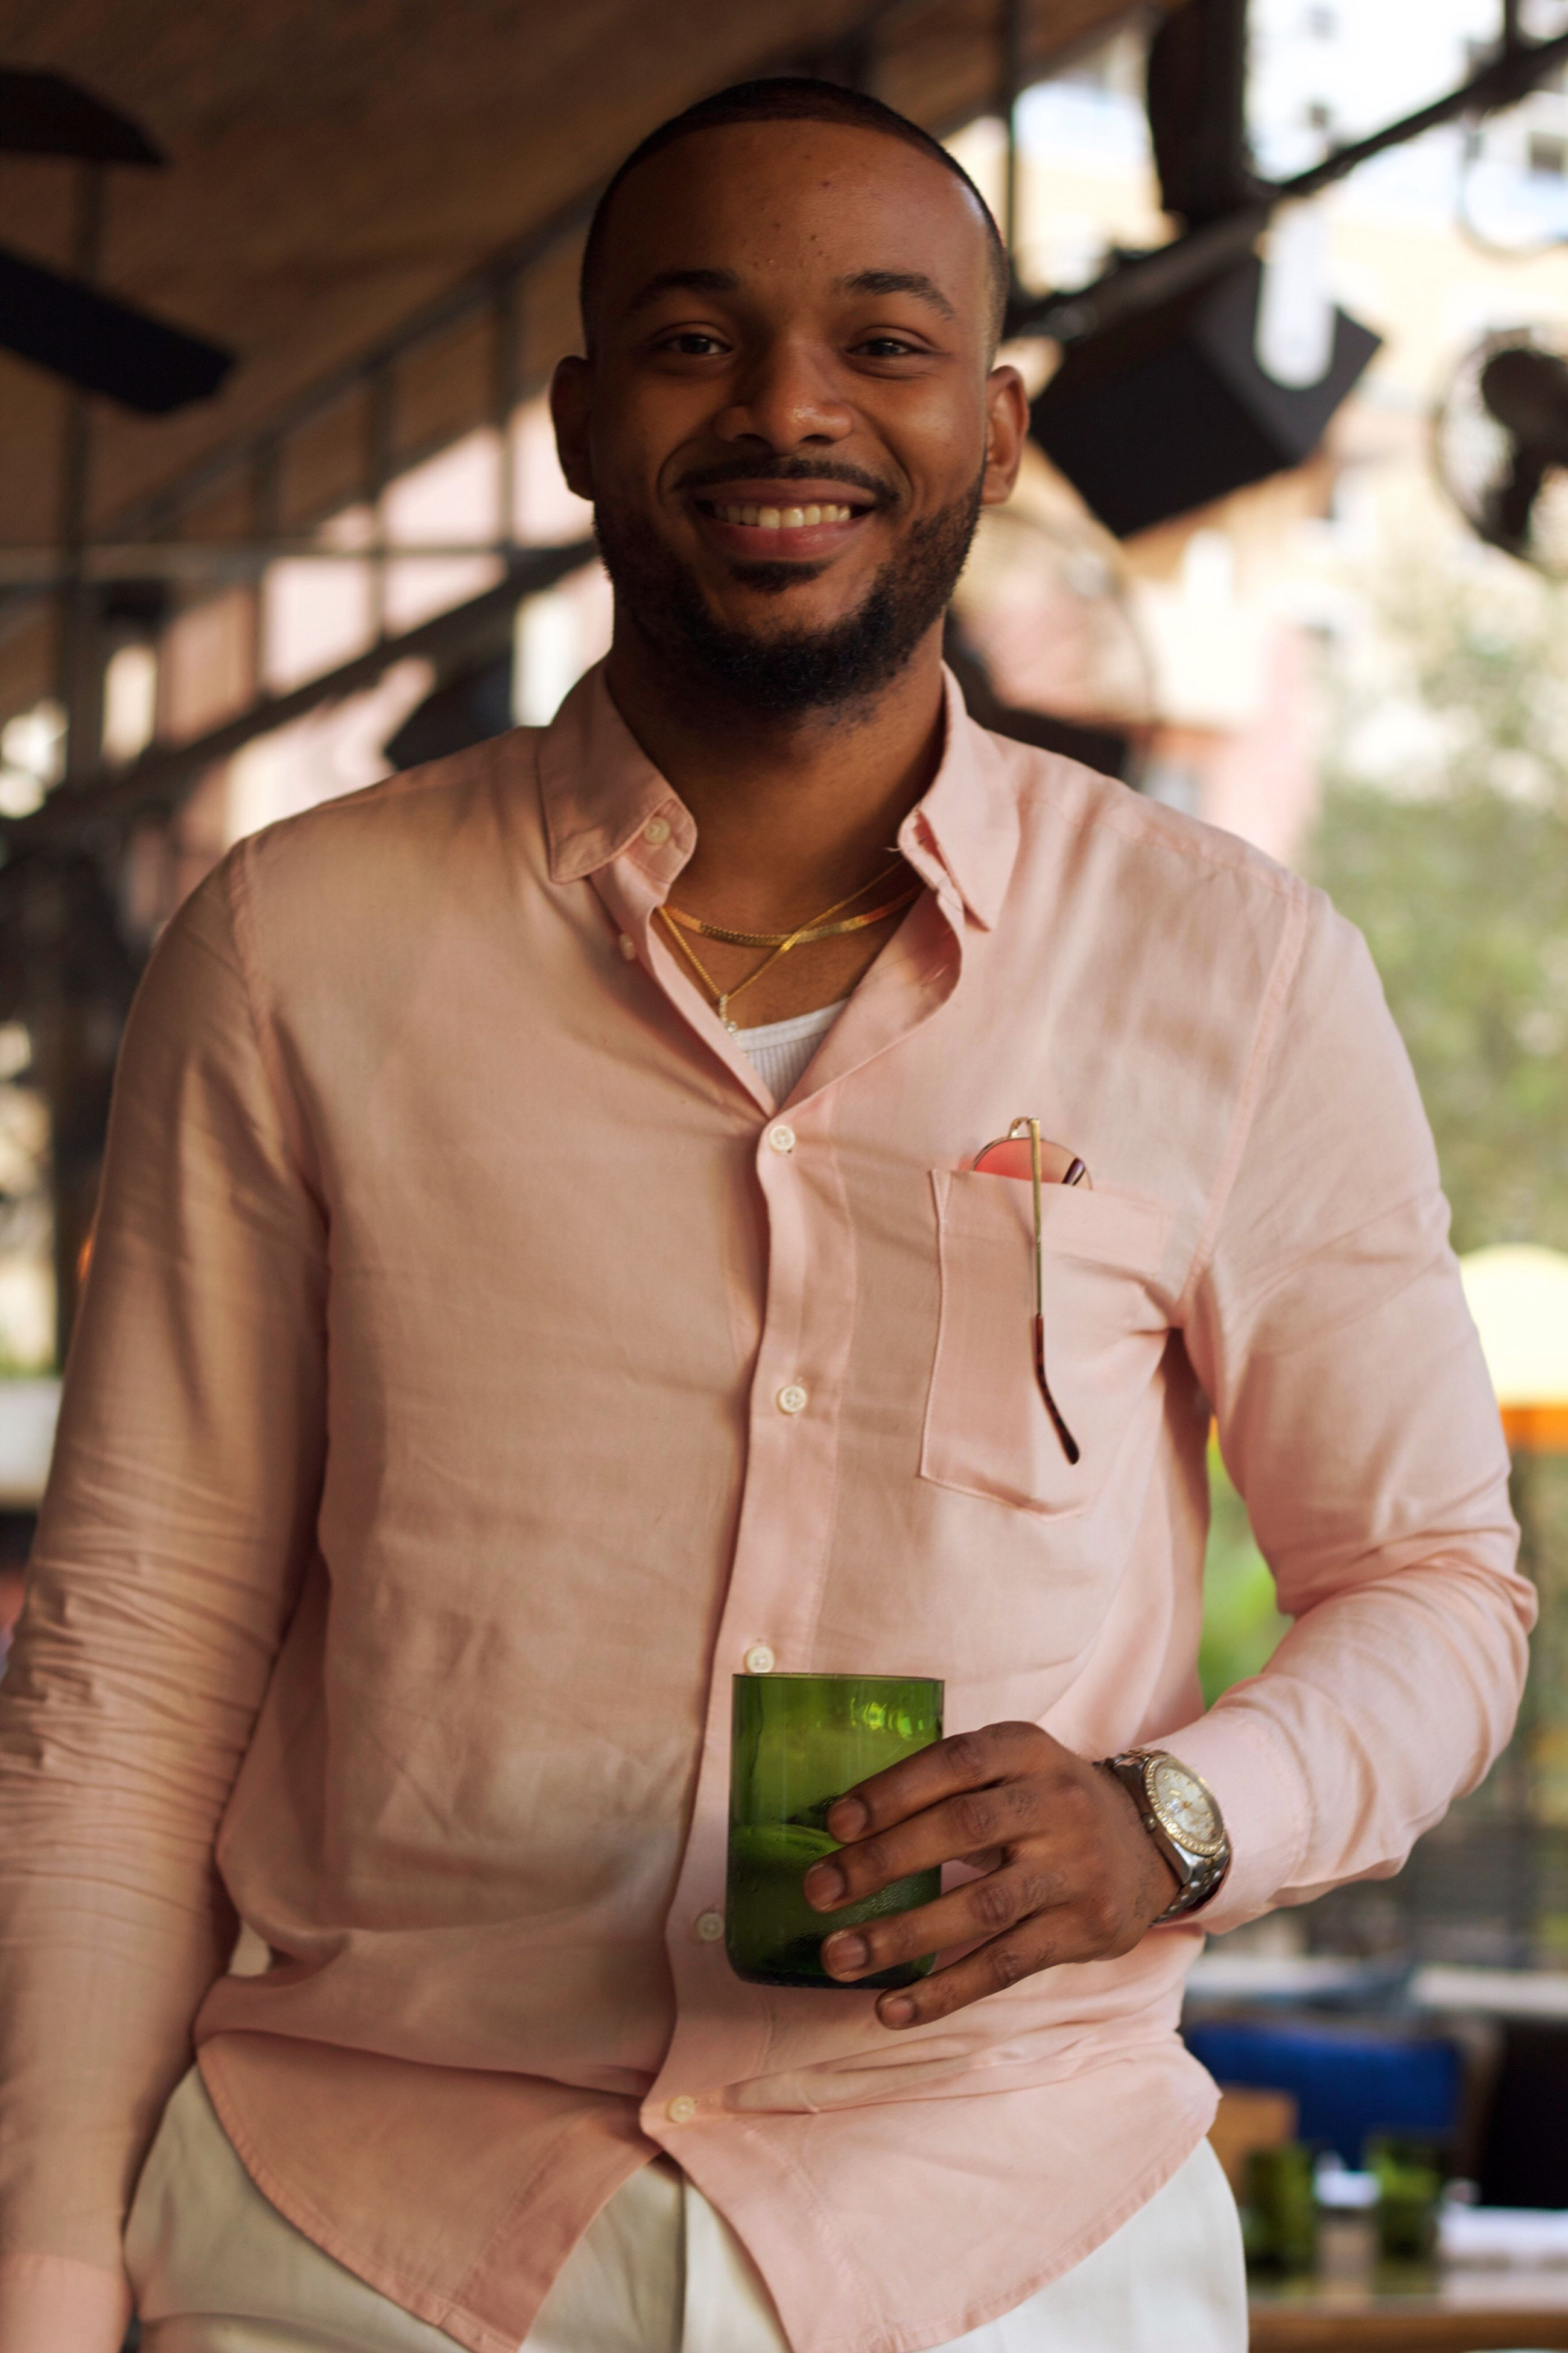 only men, one man only, adults only, handsome, men, one young man only, fashion, adult, portrait, beautiful people, young adult, one person, people, smiling, bar - drink establishment, alcohol, drink, happiness, cheerful, happy hour, macho, close-up, outdoors, day